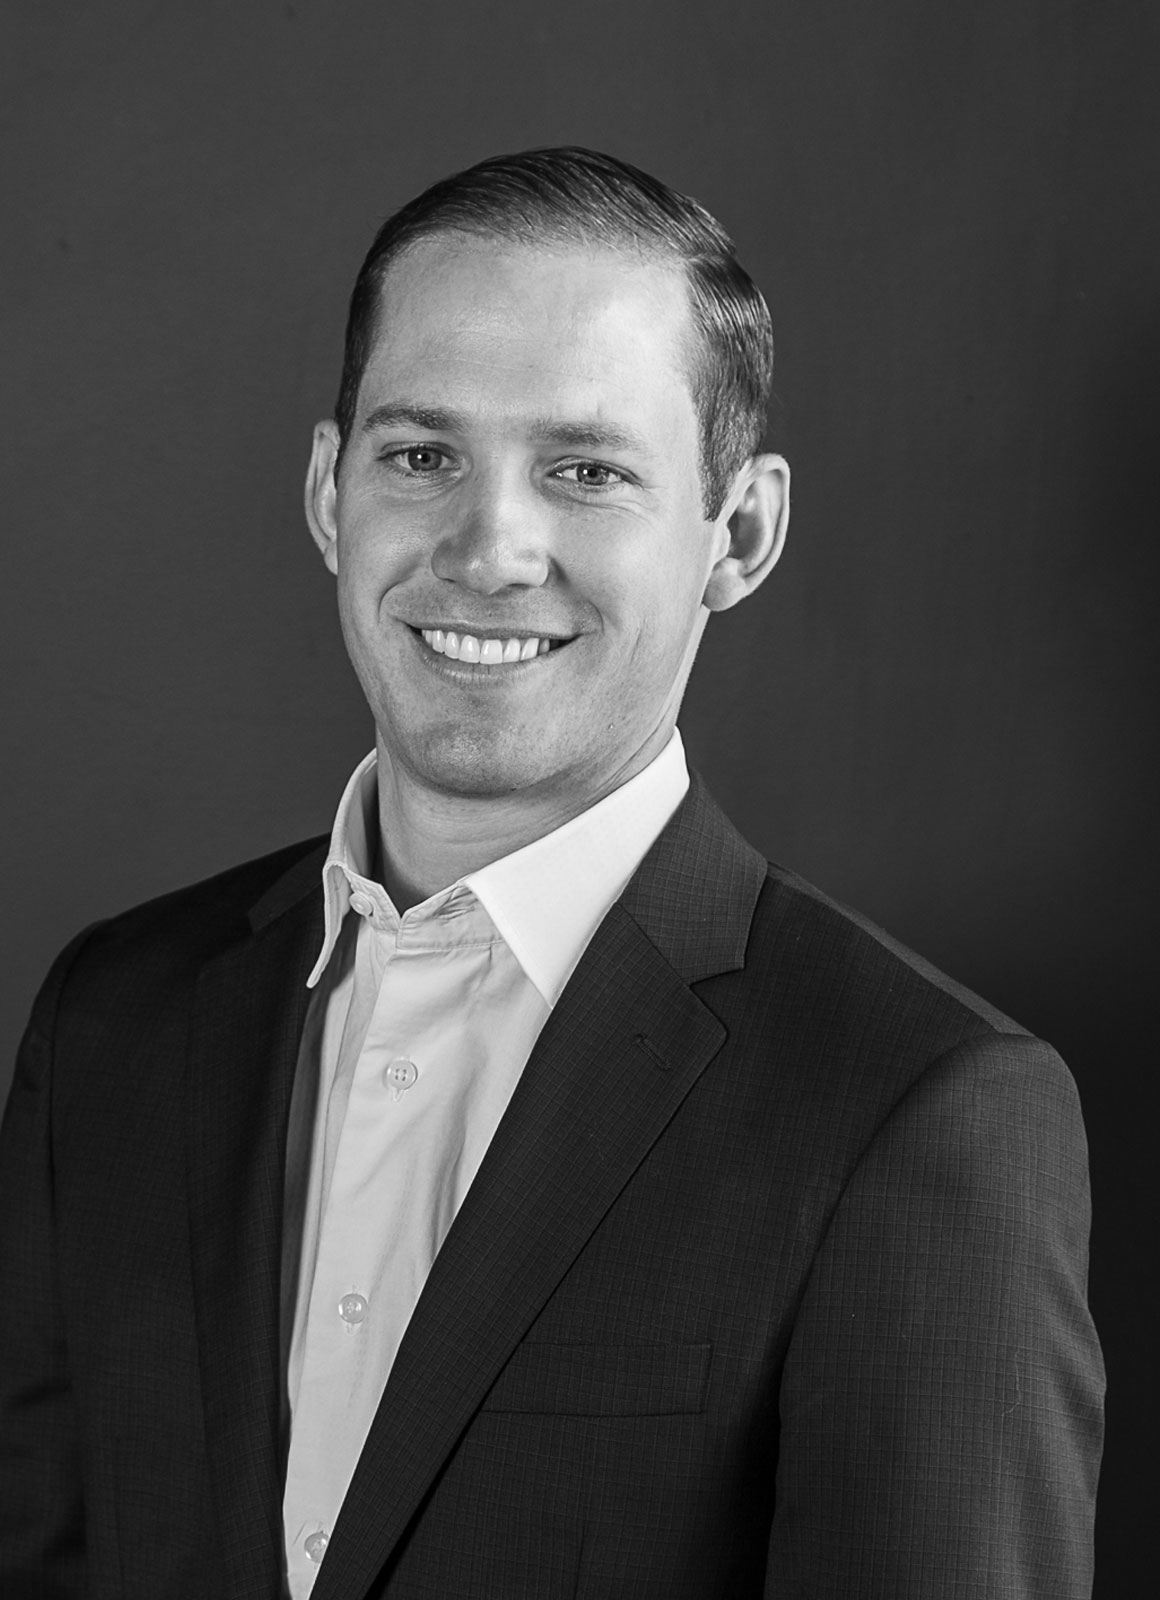 Sam Kincaid - Extremity Specialist - Evans Surgical